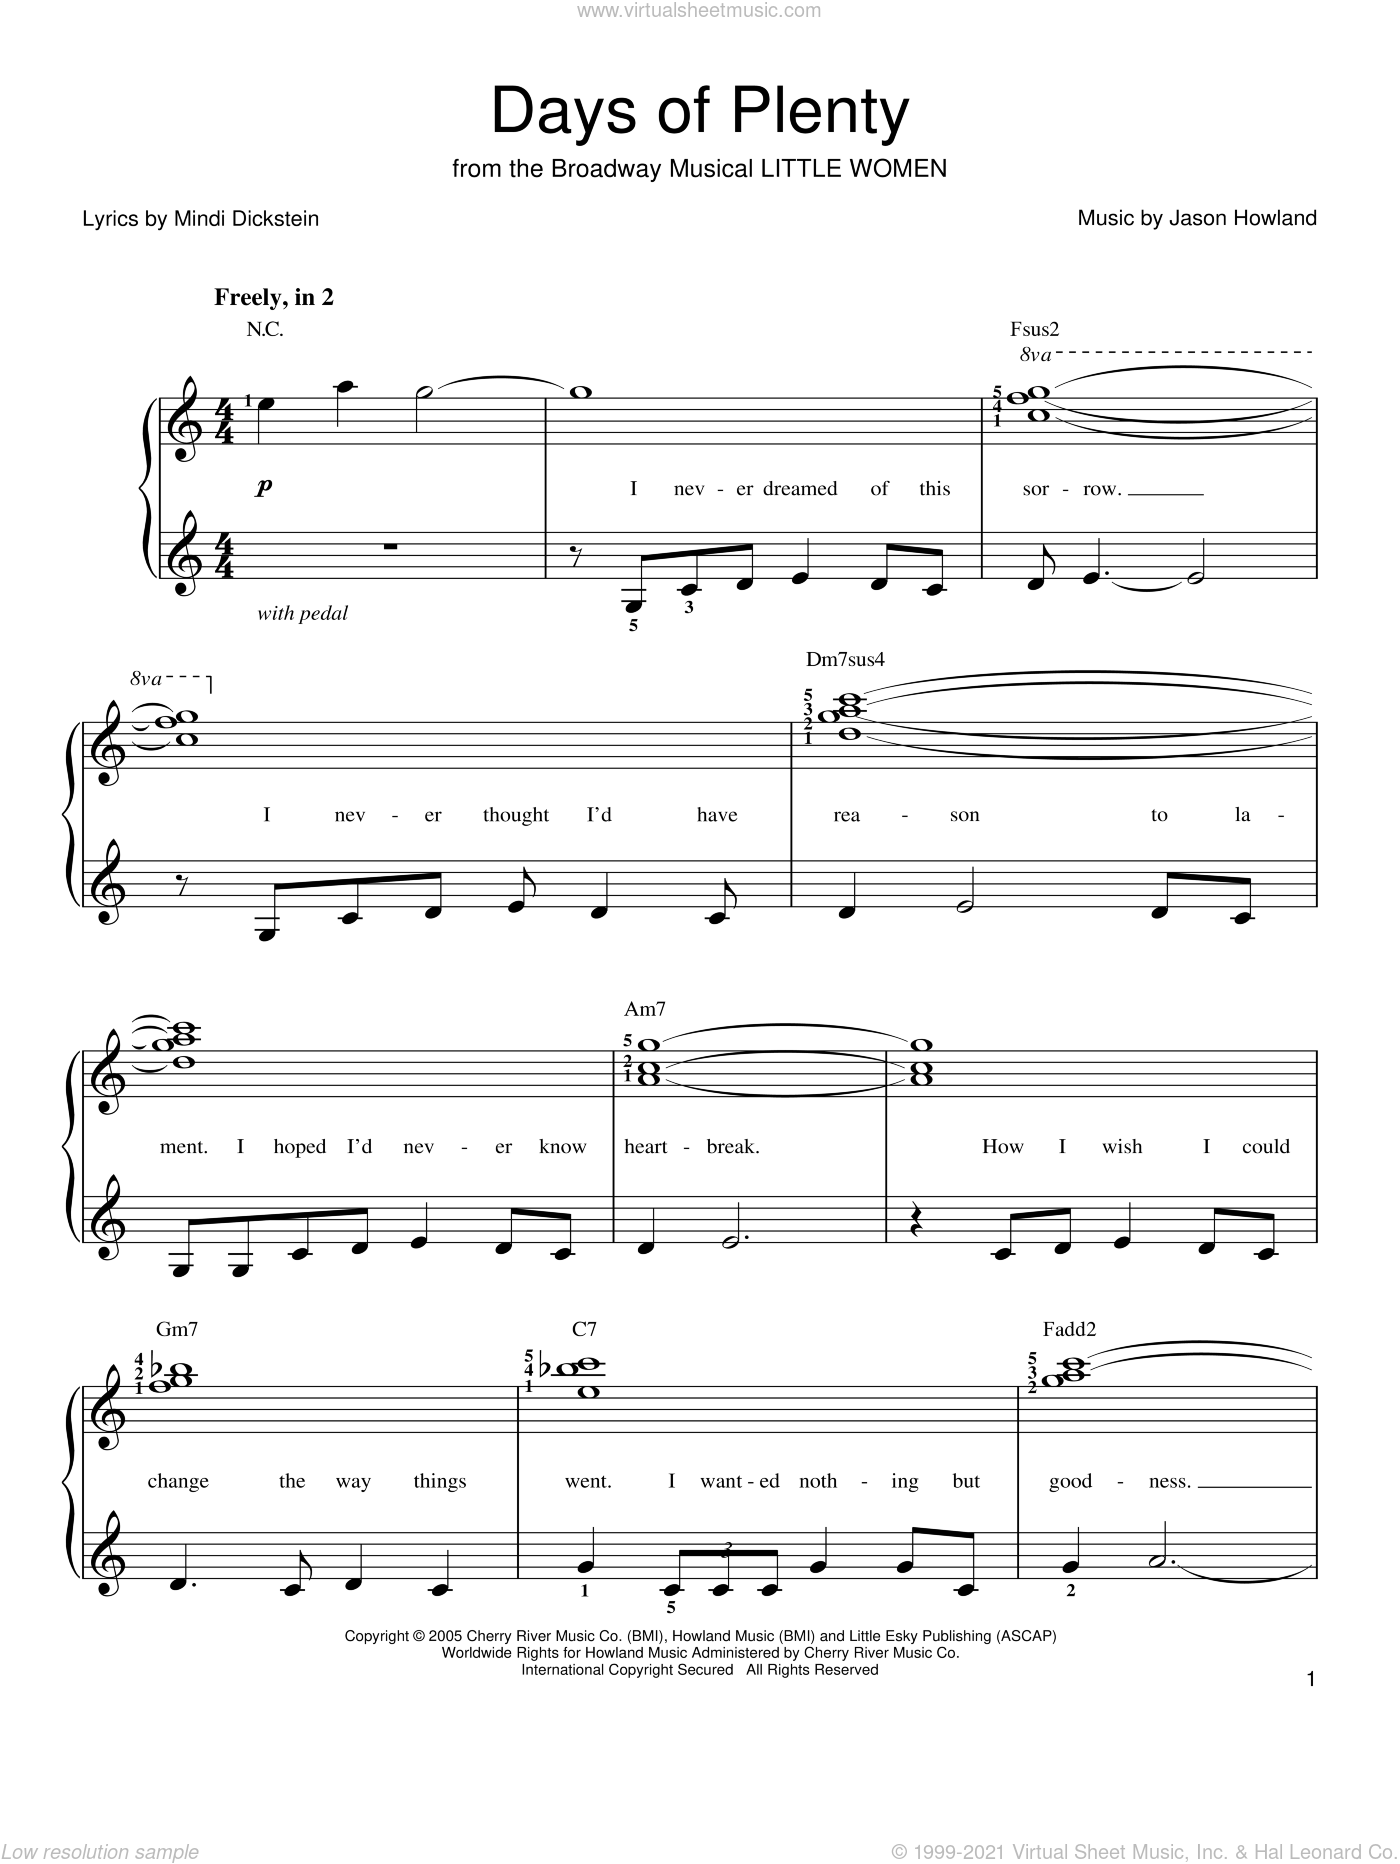 Days Of Plenty sheet music for piano solo by Jason Howland and Mindi Dickstein. Score Image Preview.